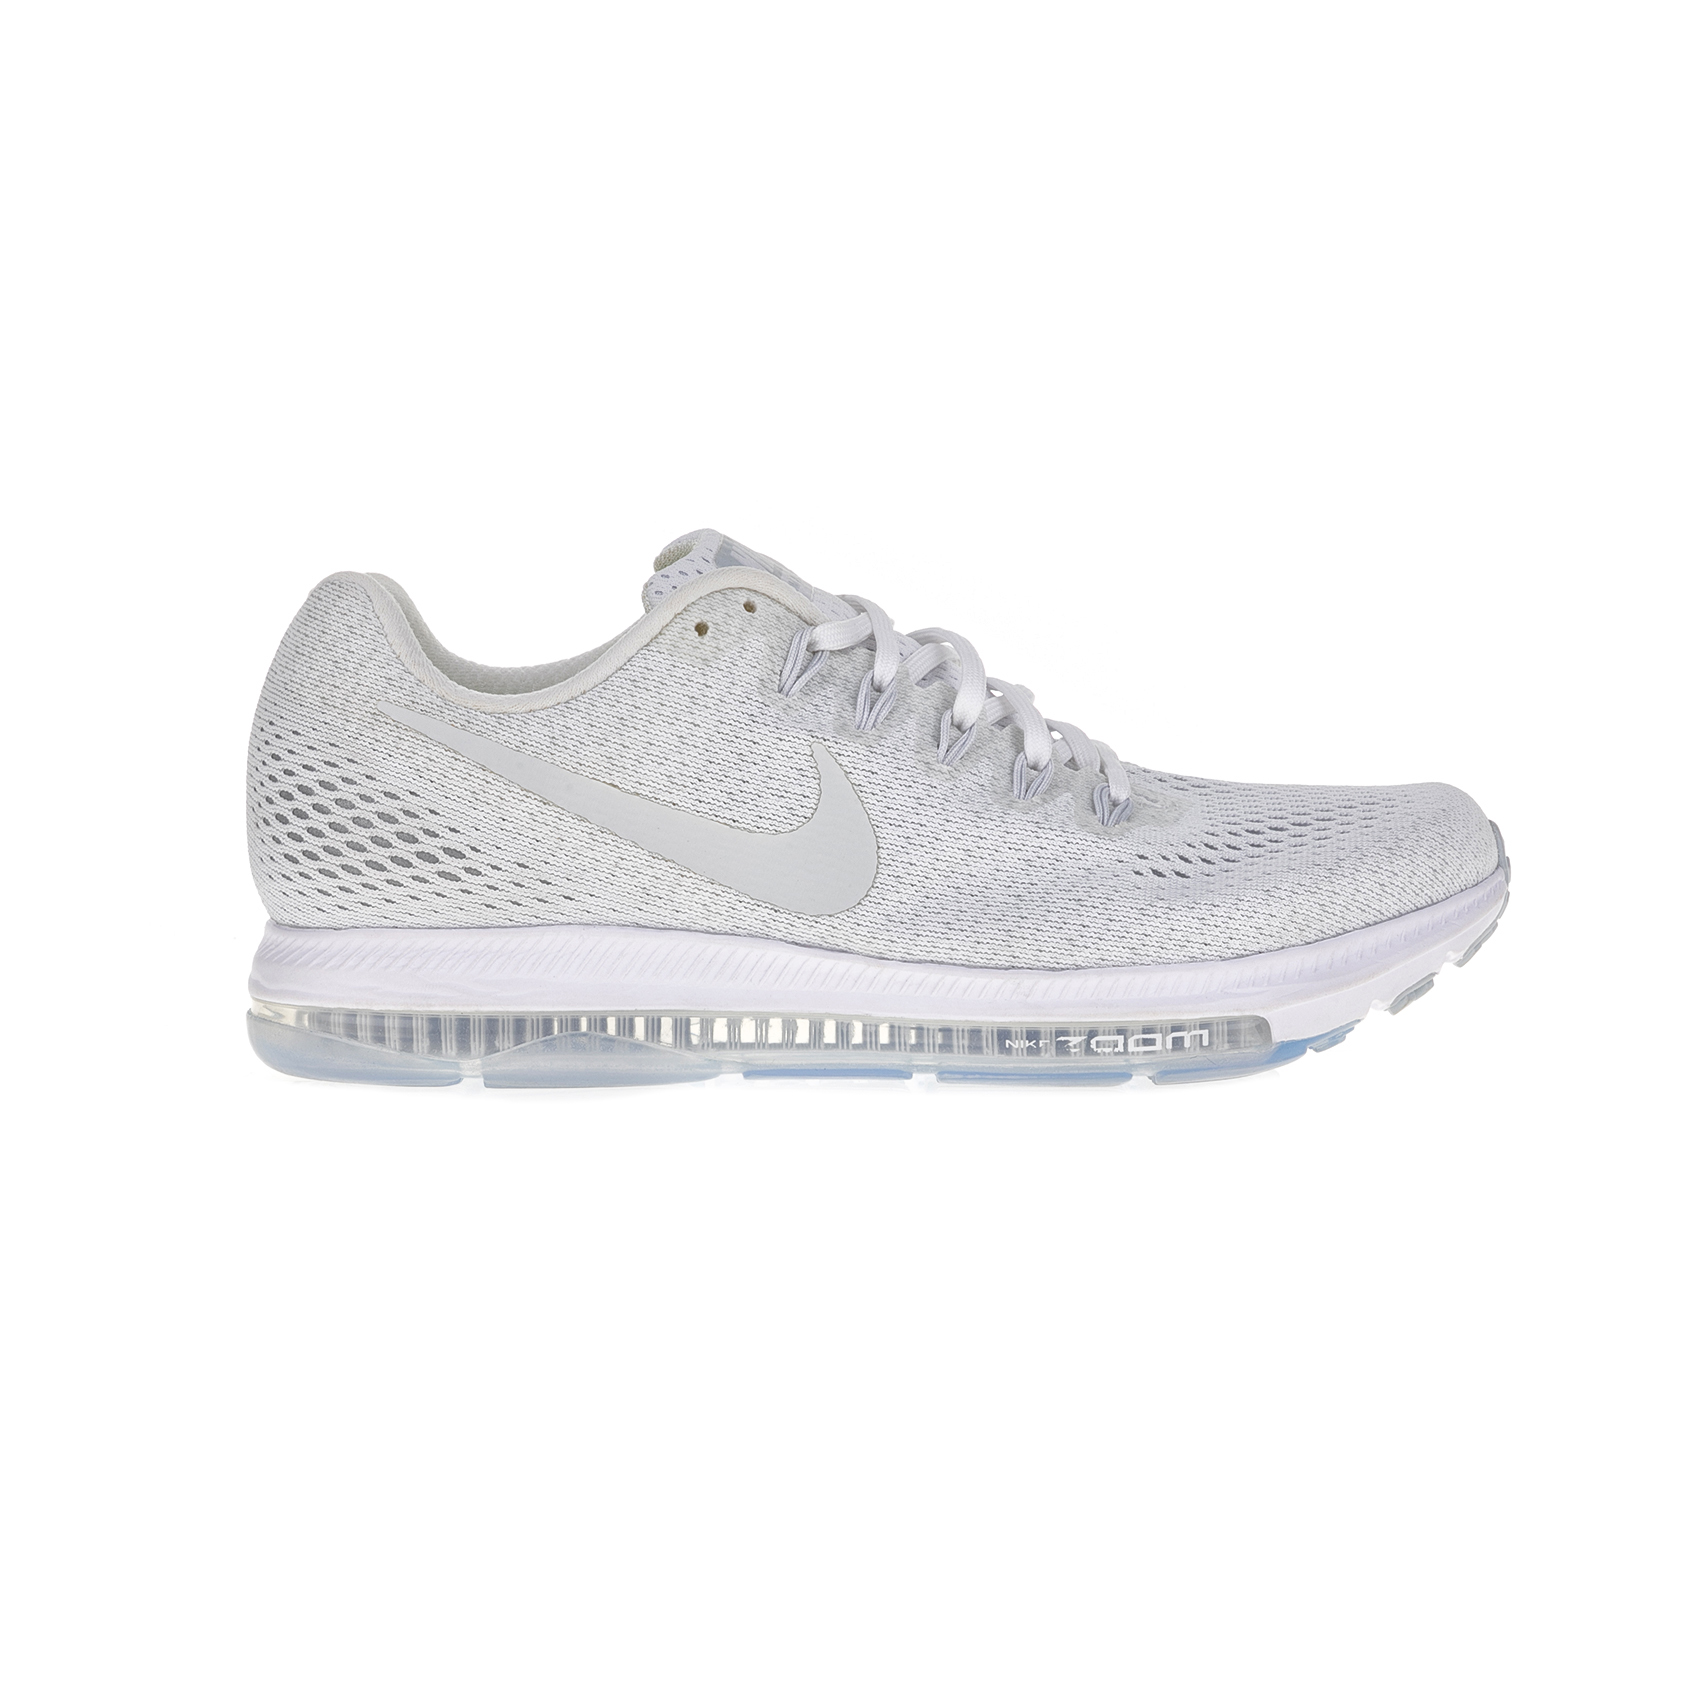 NIKE – Γυναικεία παπούτσια NIKE ZOOM ALL OUT LOW λευκά